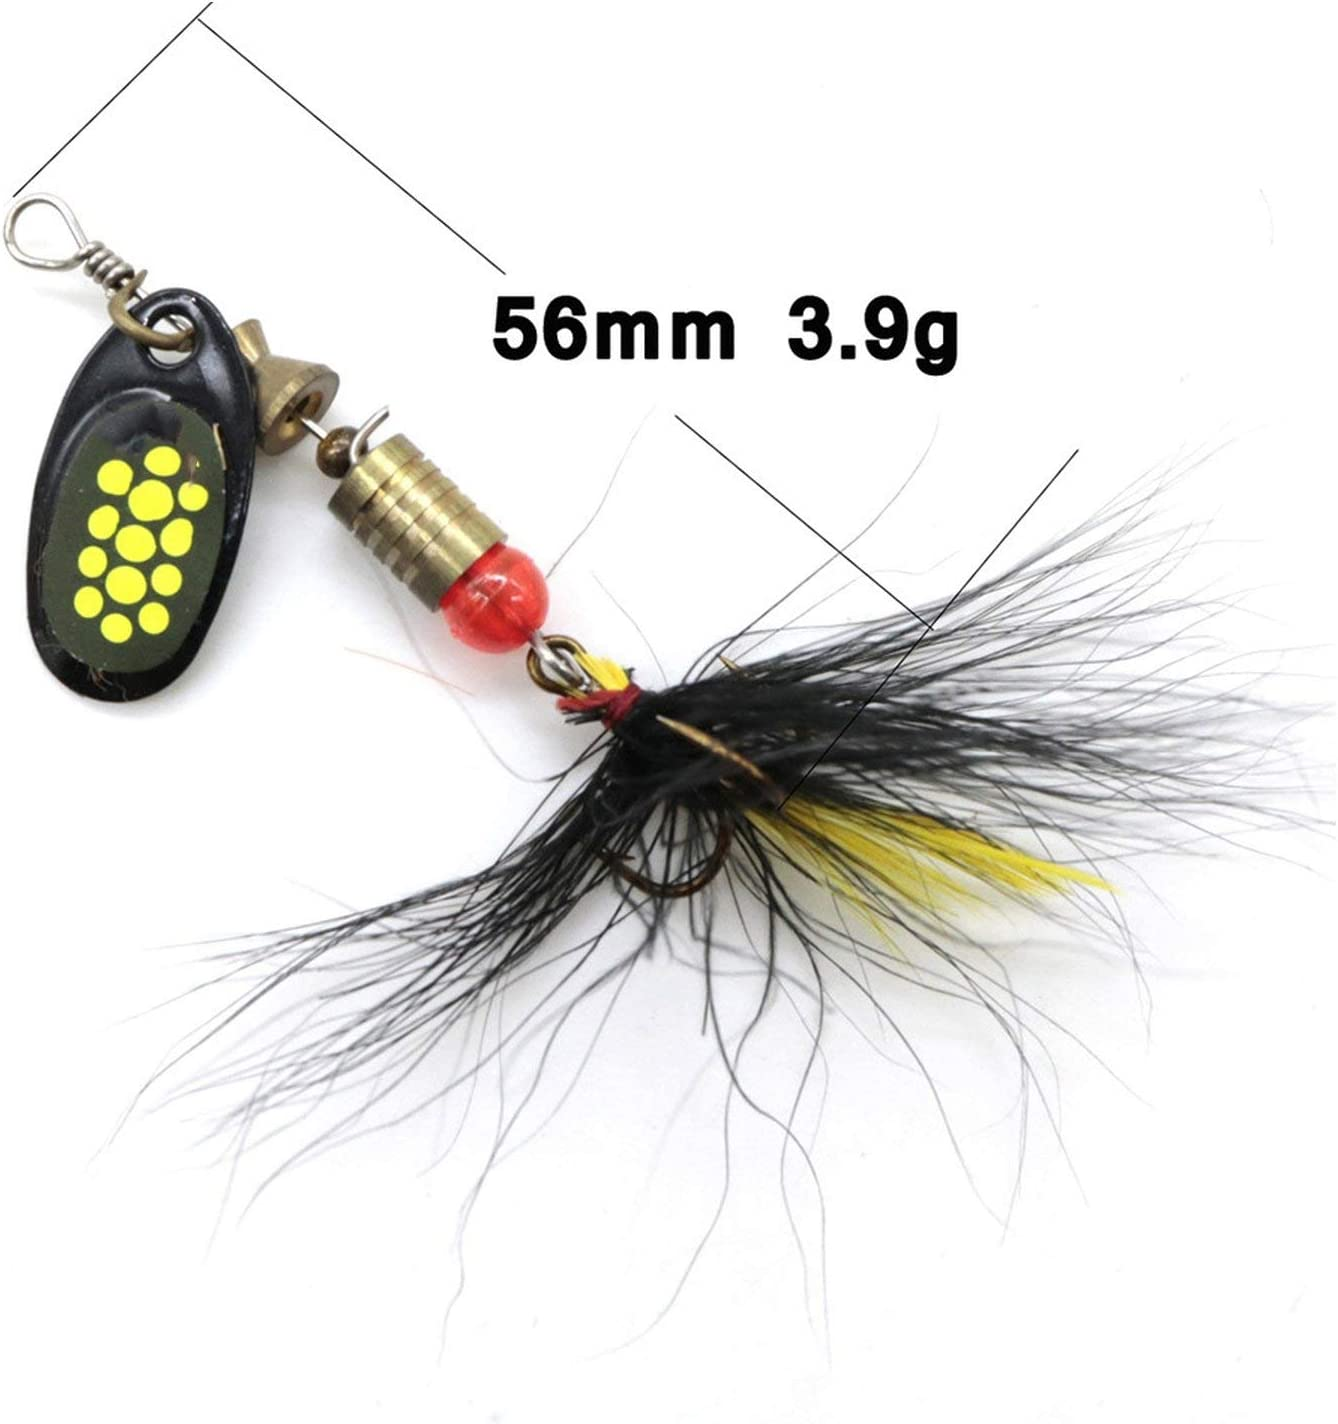 Miracle day Peche 1pcs Fishing Lures Trout Spoon Metal Spinners Baits for Jig Fly Fishing Baits Sea Hard Lures with Feather Hooks Pesca